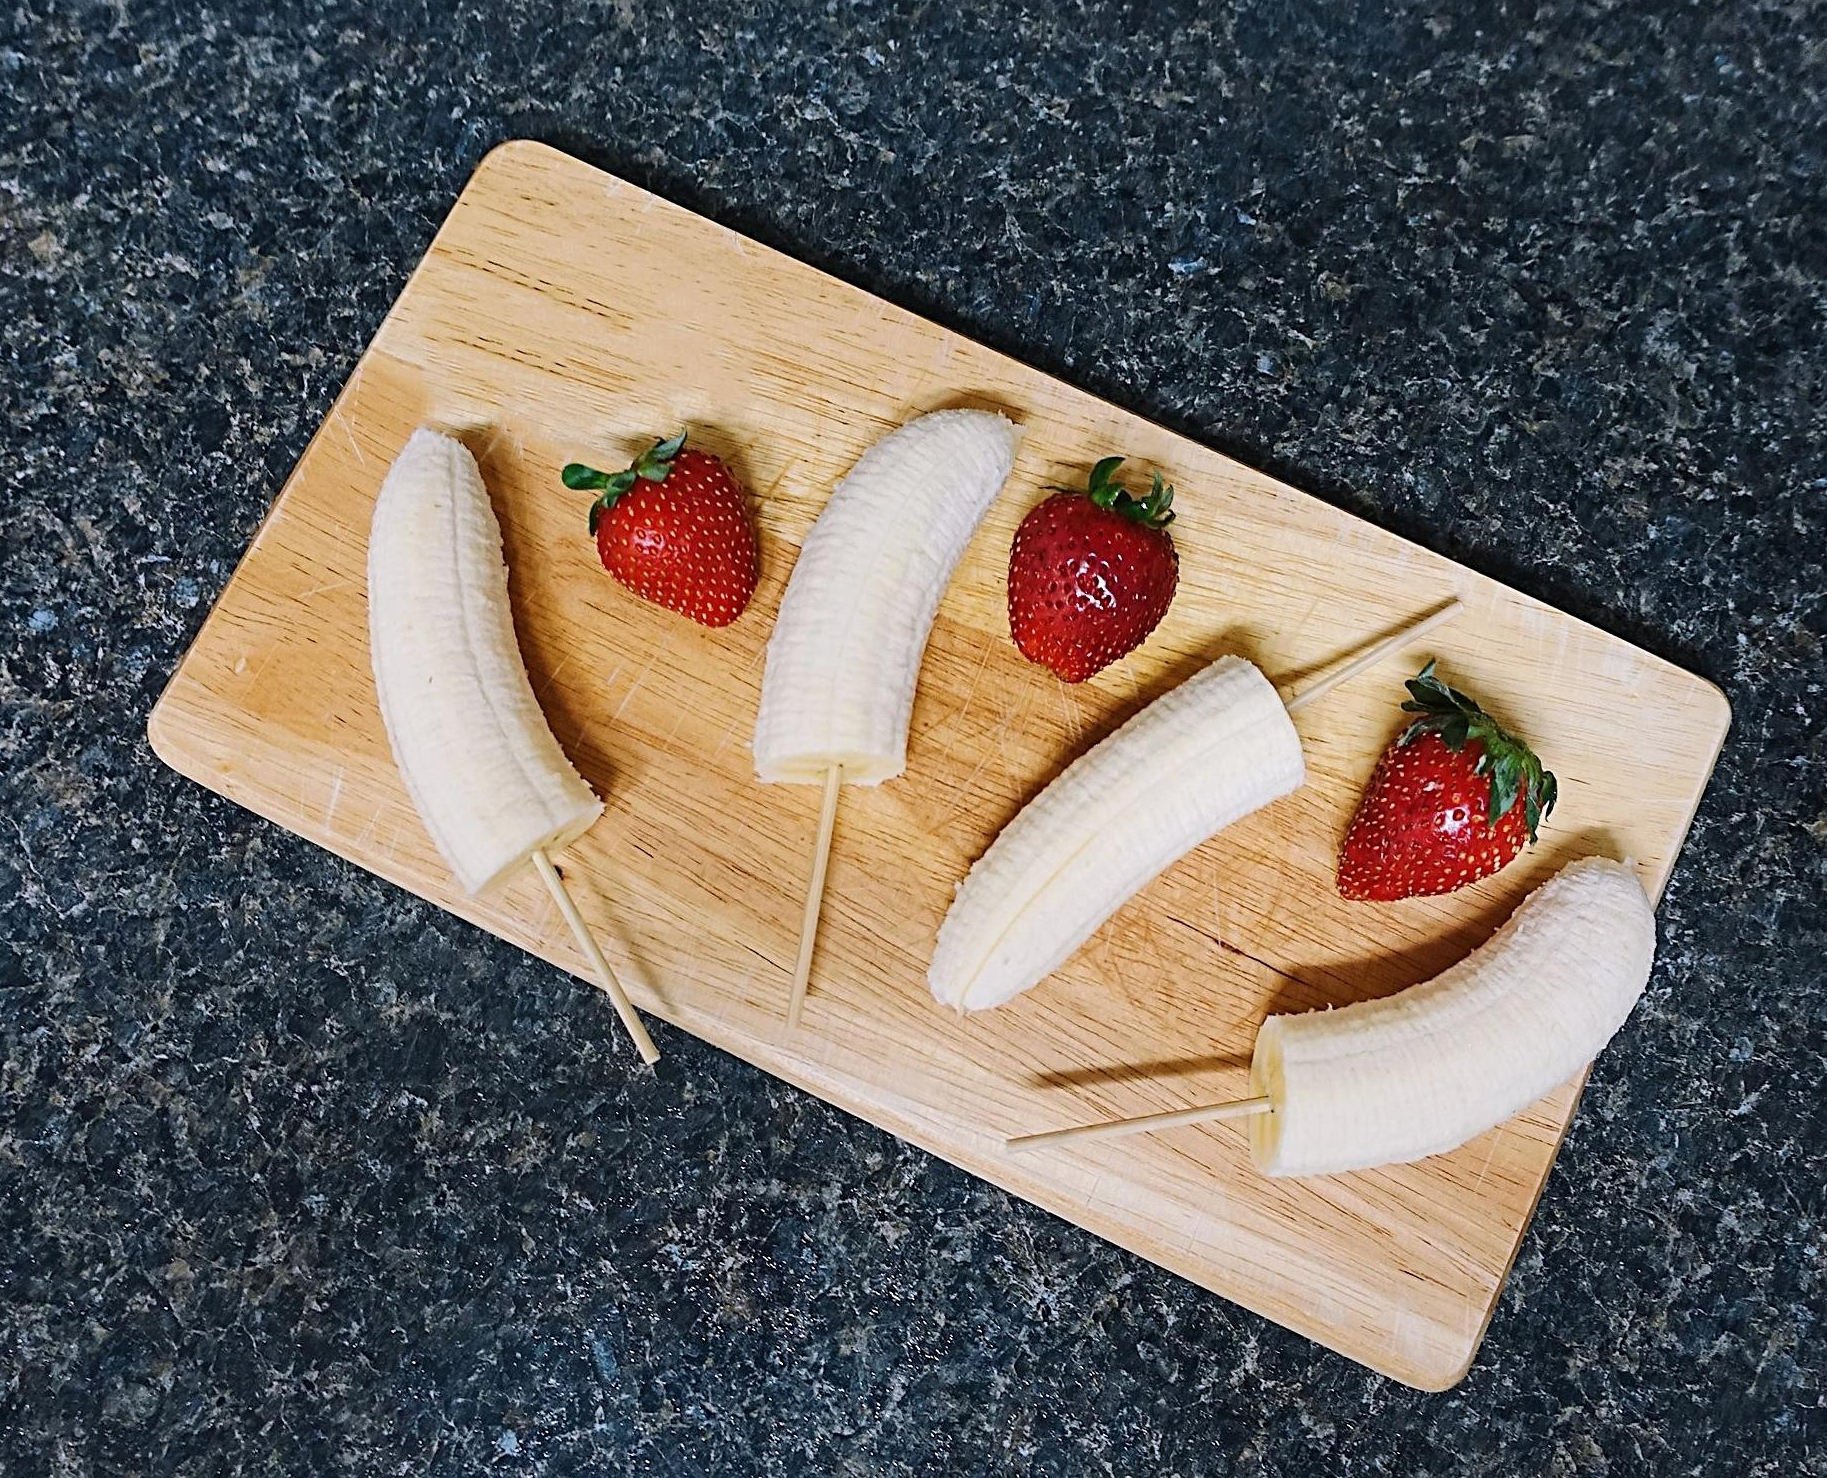 Banana and Strawberries